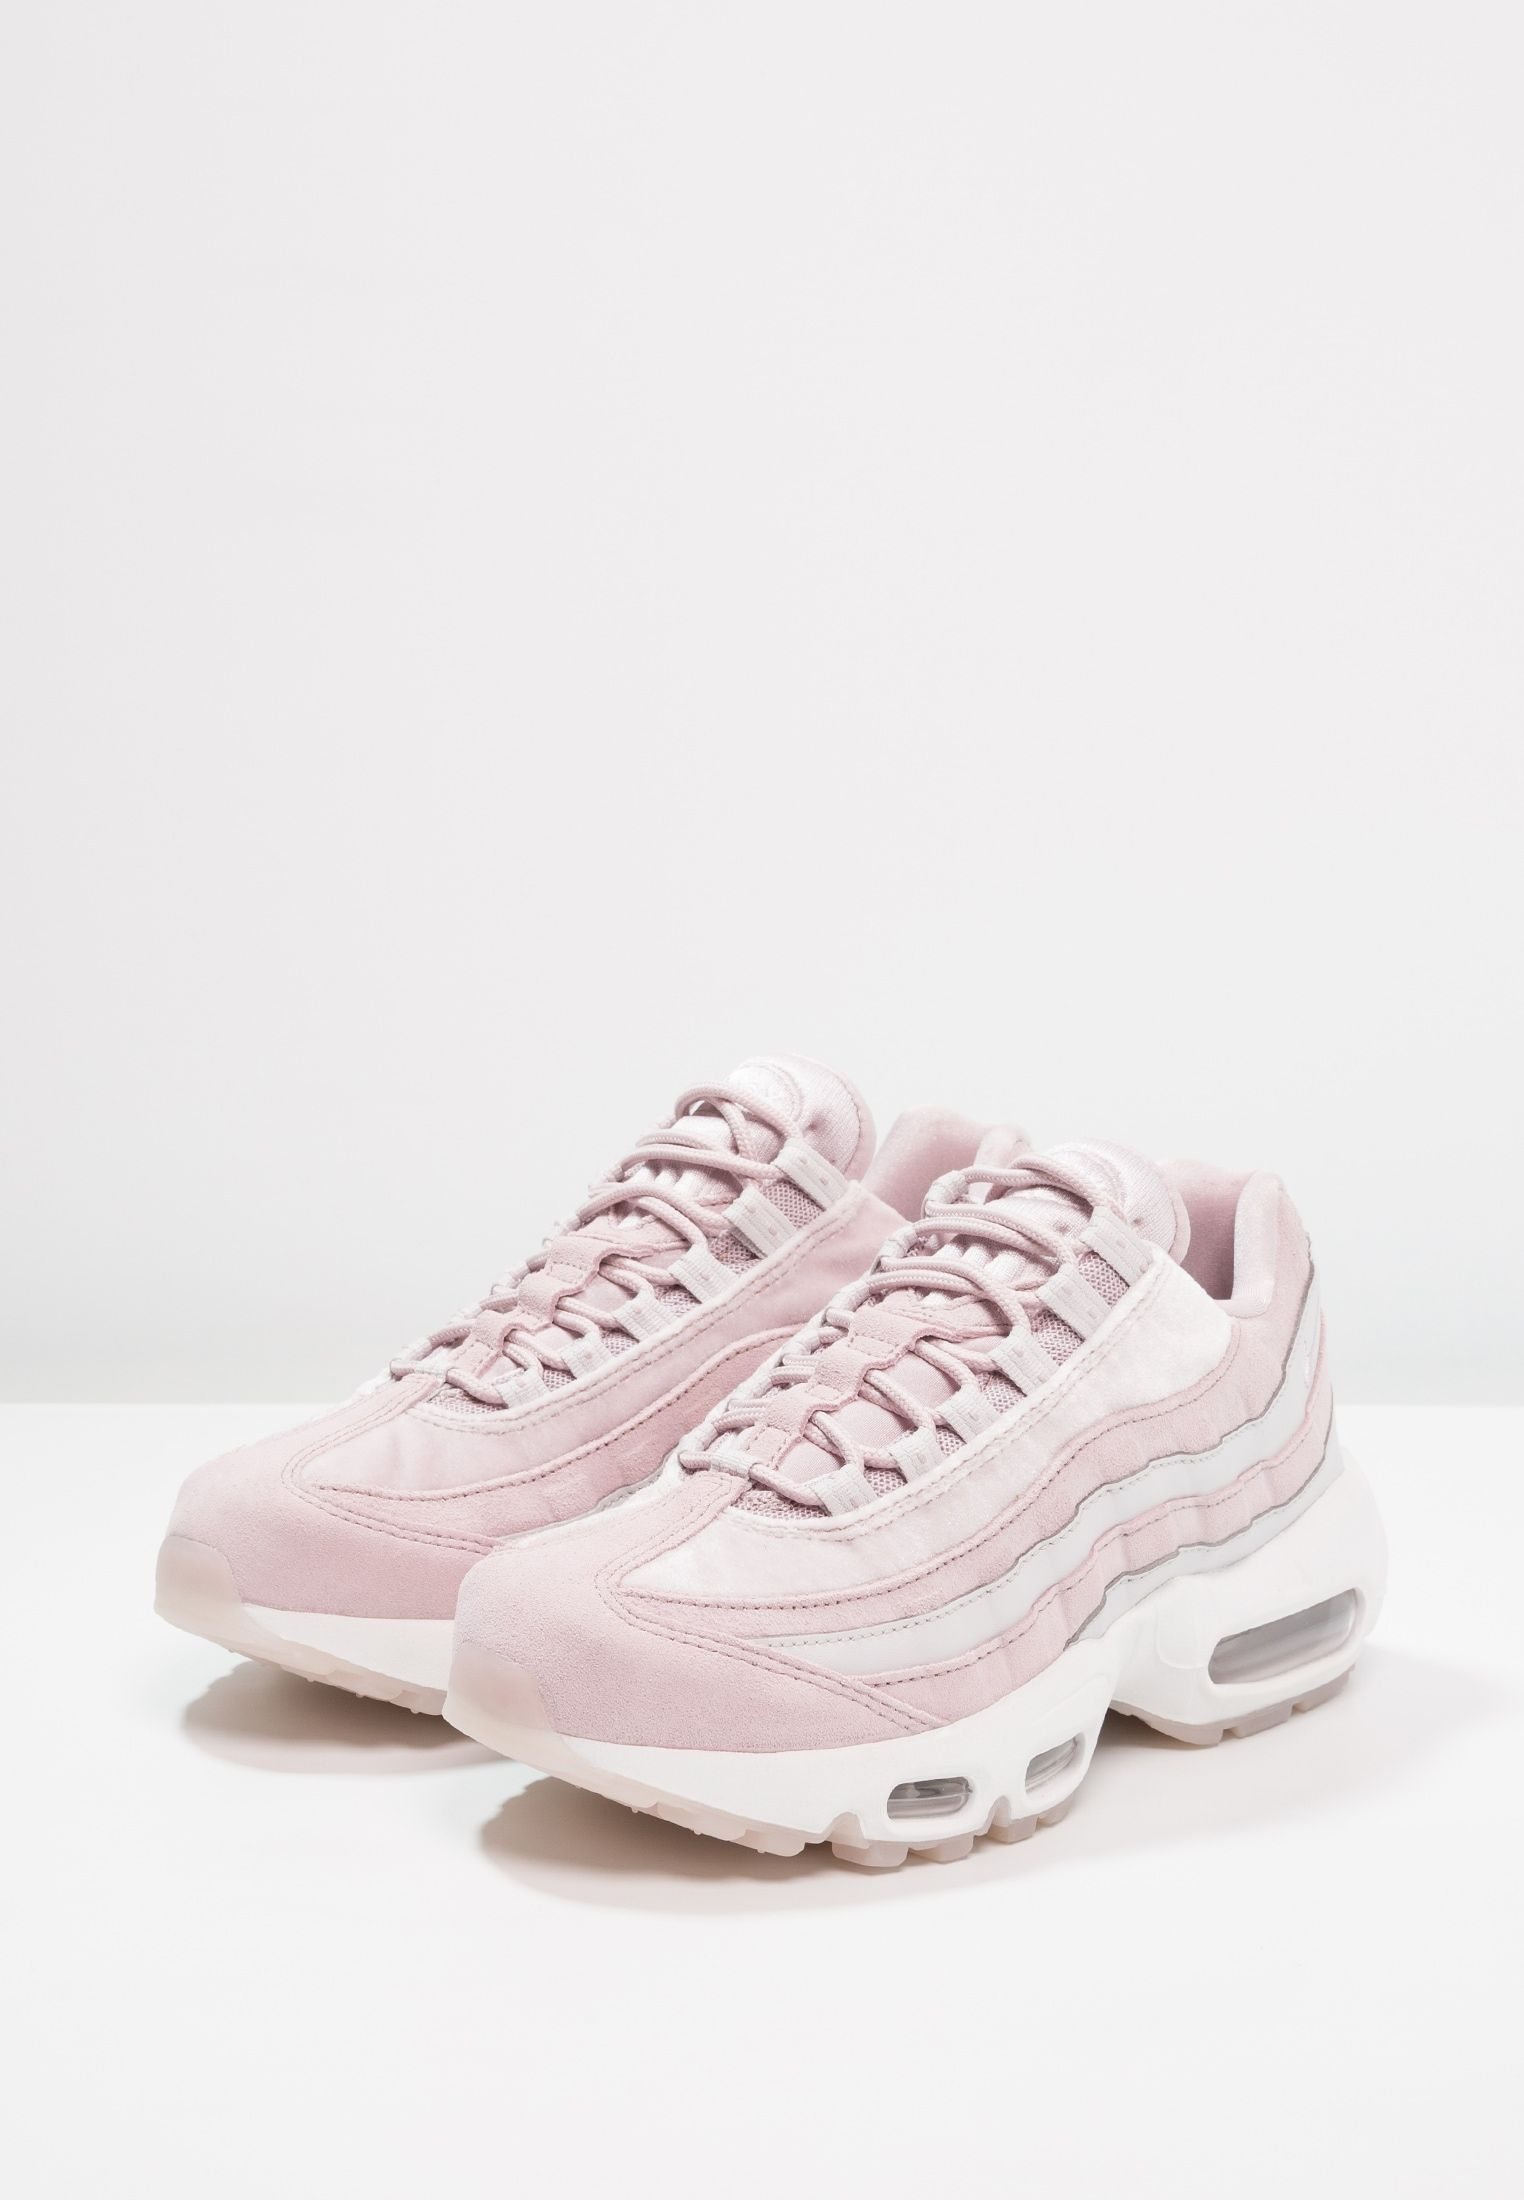 size 40 f12c3 8f6d8 Nike Sportswear AIR MAX 95 - Sneakers - particle rose vast grey summit white